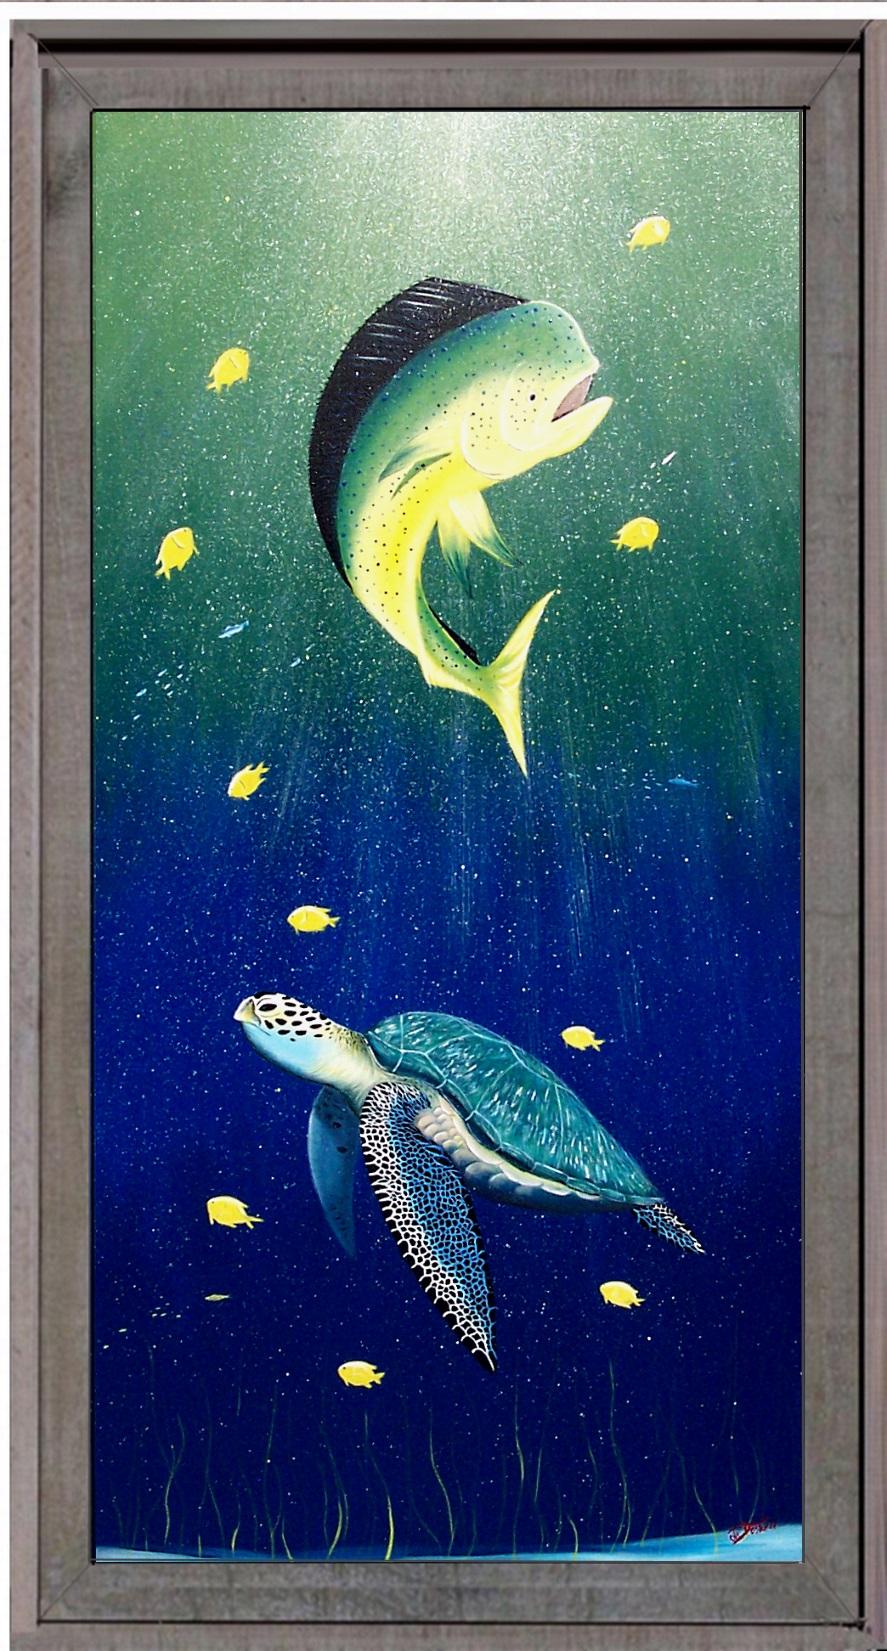 Original paintings by popular Florida artist Gary Boswell